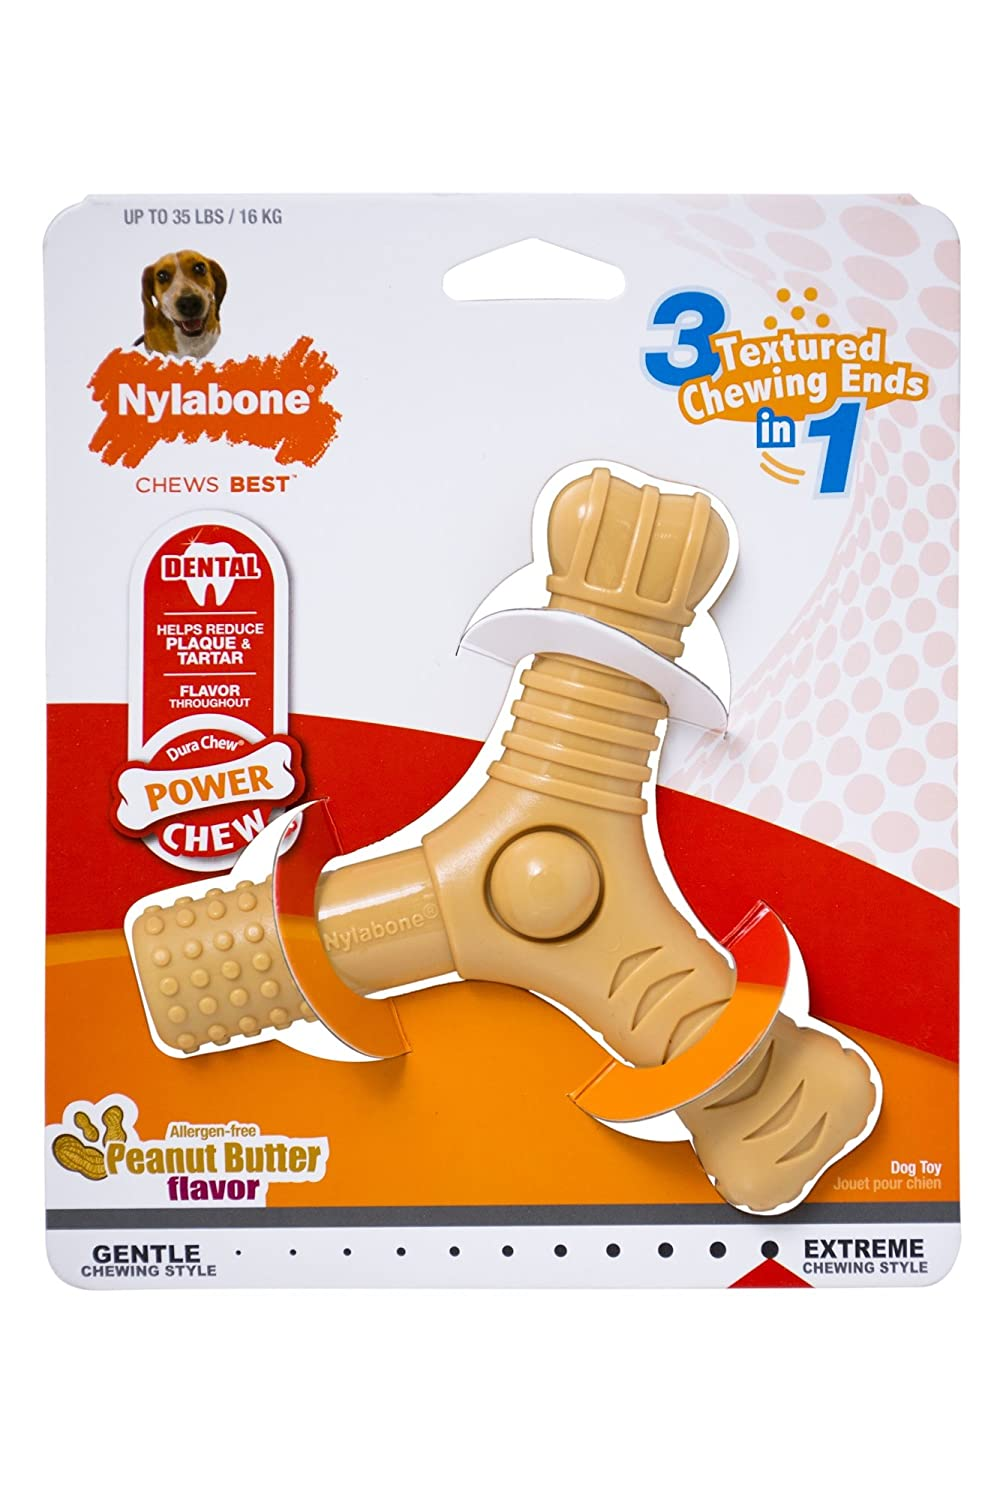 Nylabone Power Chew Dura Chew 3-Prong Dog Chew Toy, Peanut Butter Dog Toy, Medium